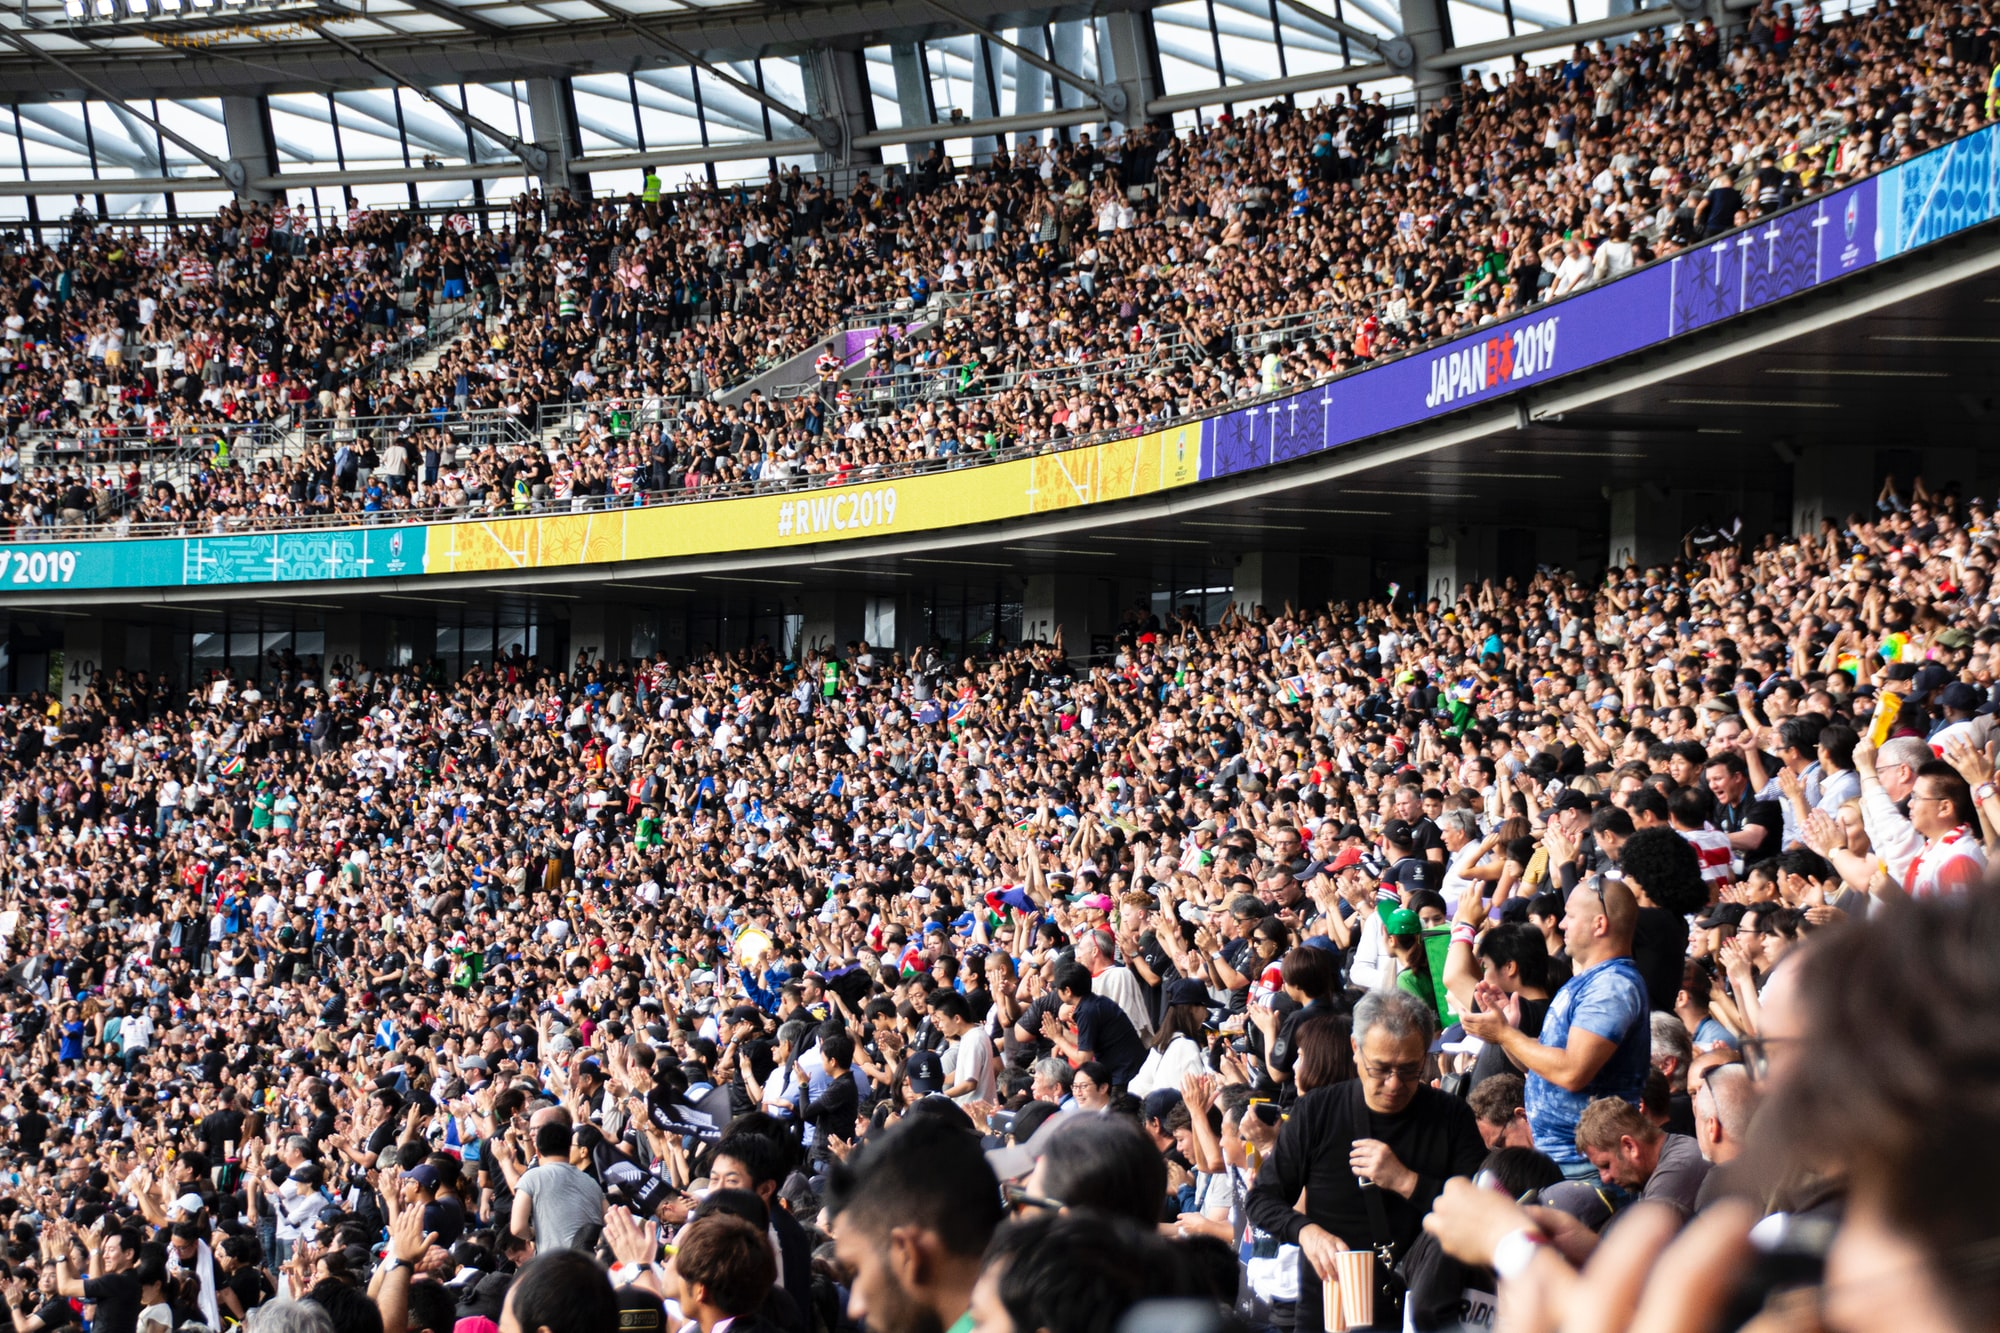 Cheering crowd at rugby world cup 2019